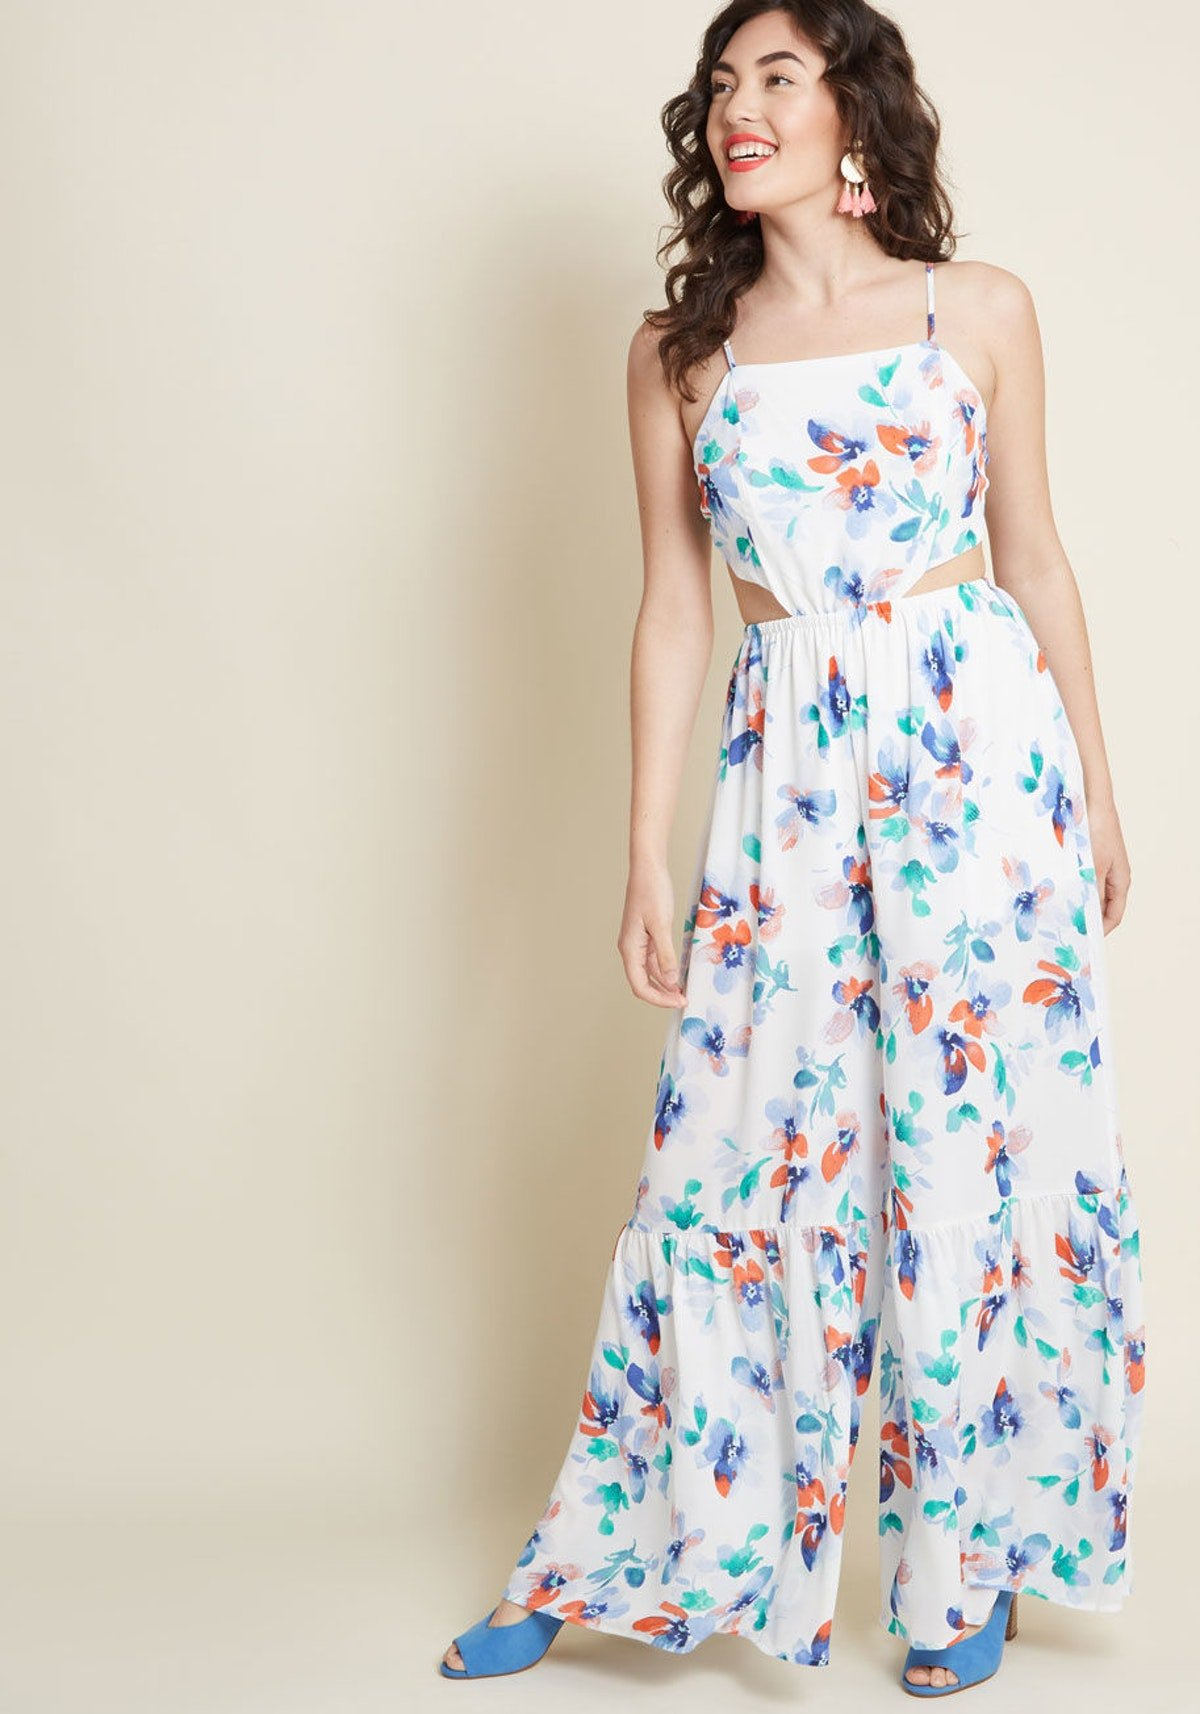 ModCloth's July 4 Sale Includes The Cutest Summer Dresses For 40% Off